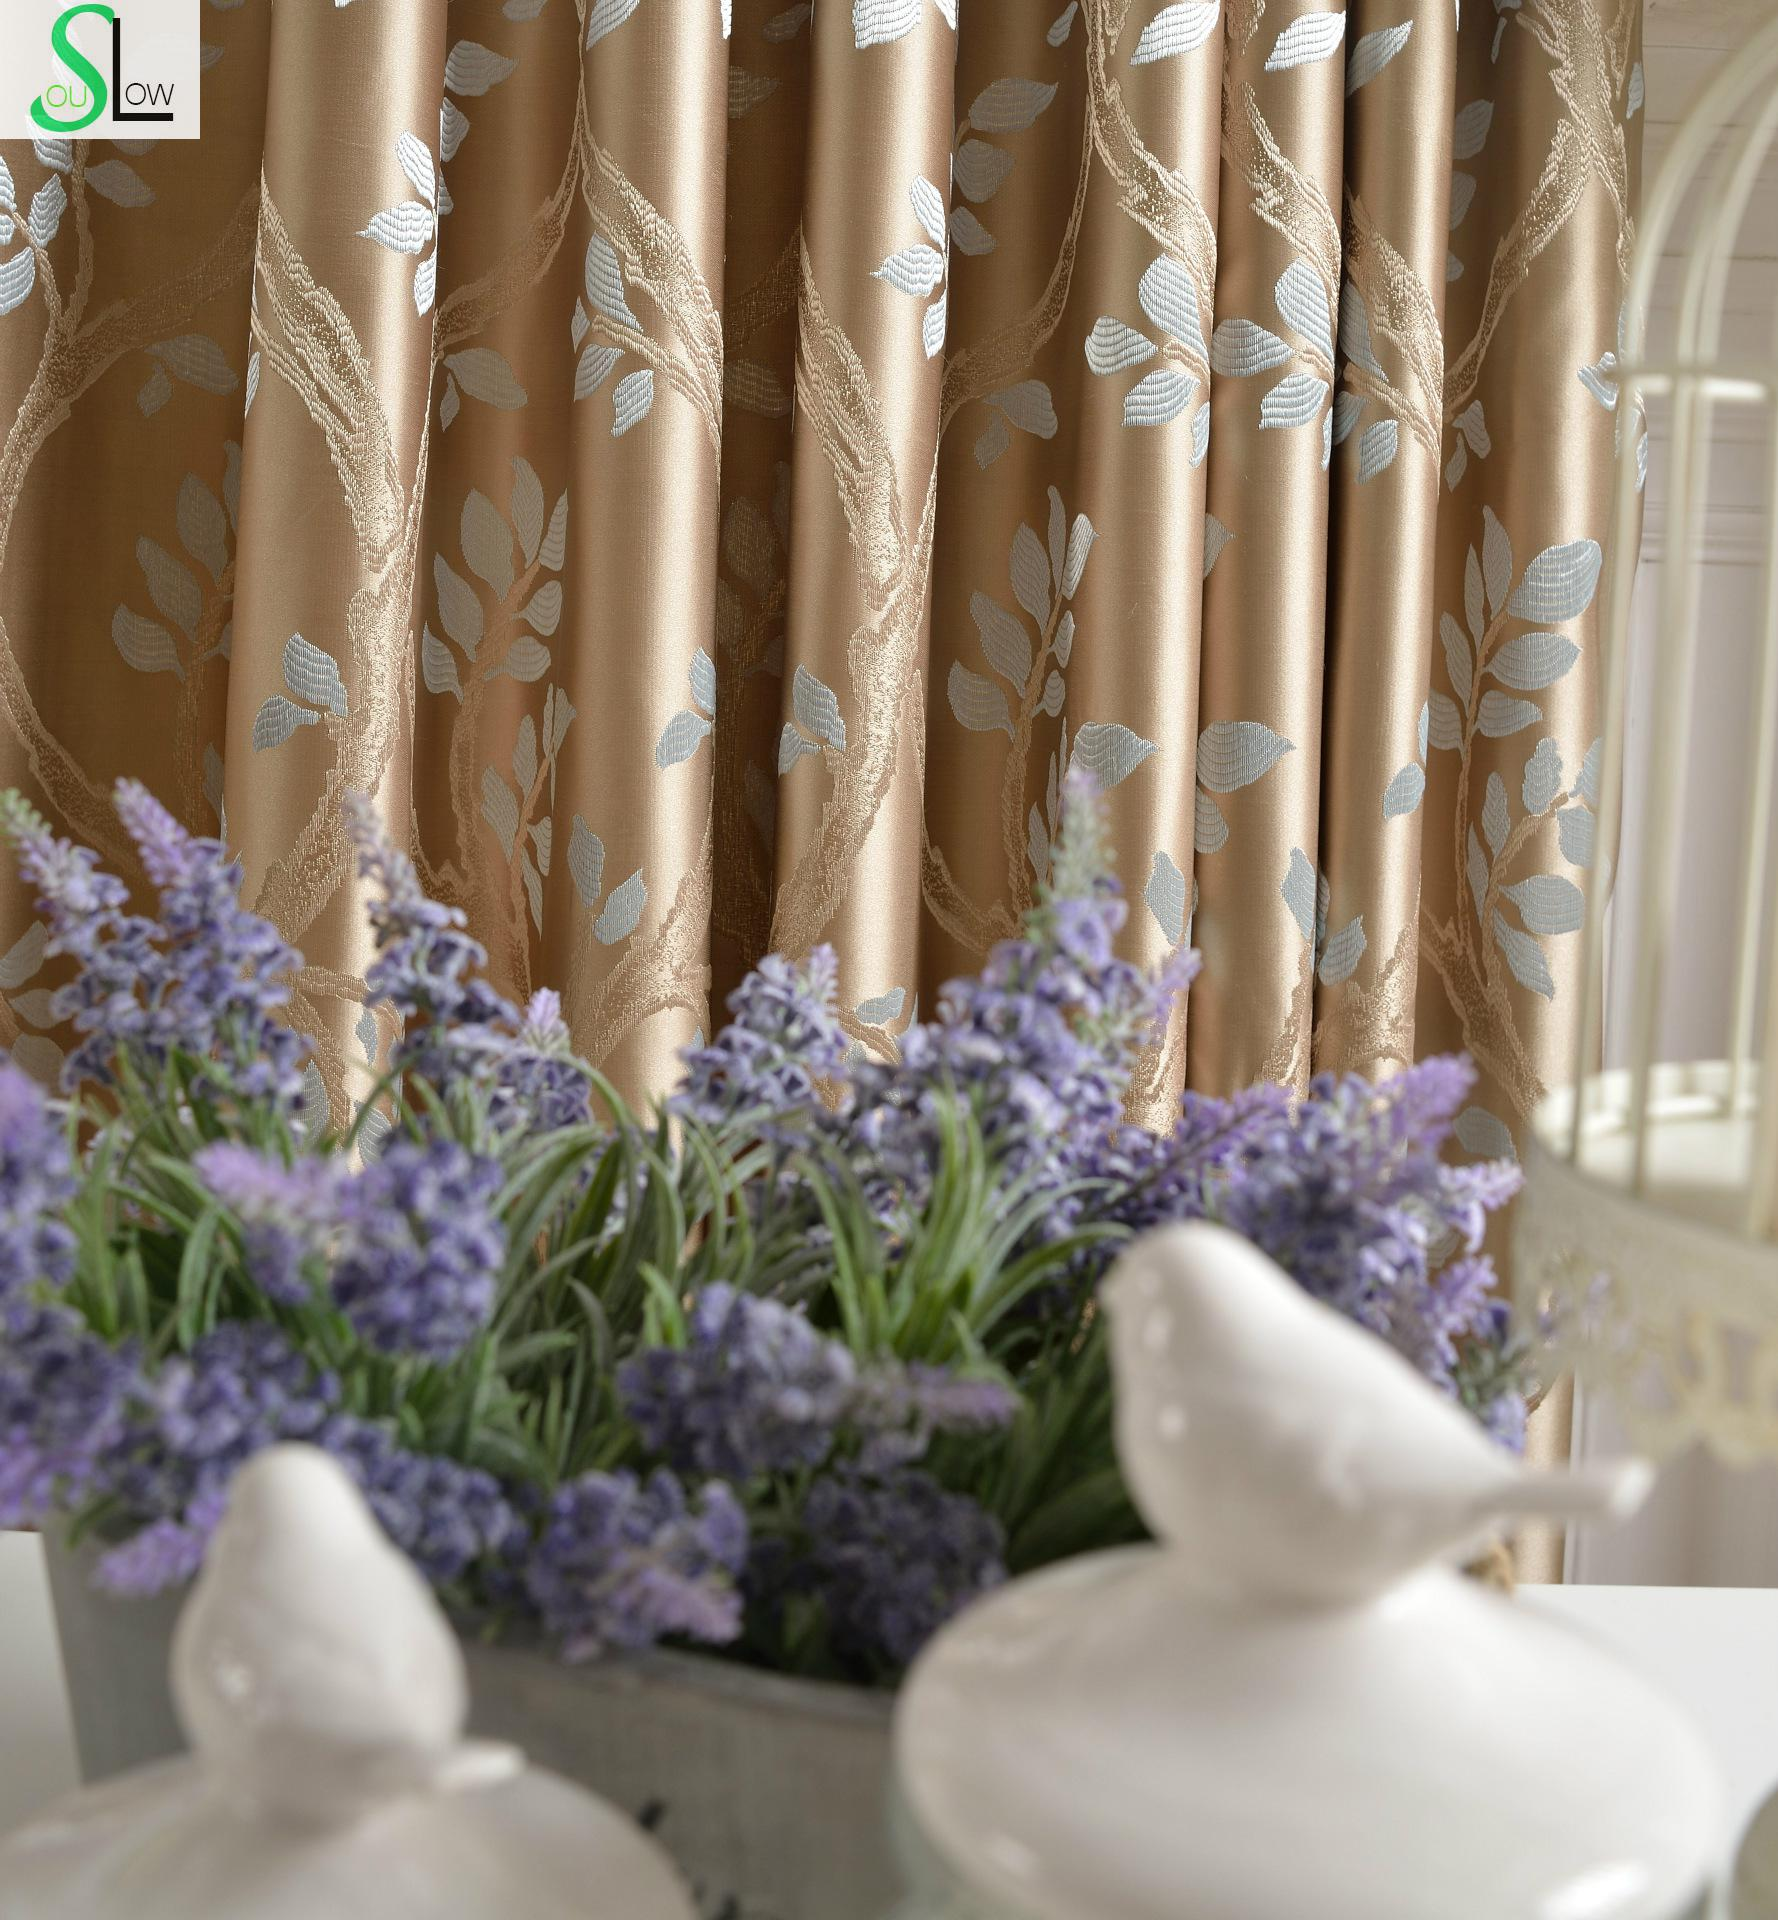 Cotton lace curtains - Peach High Precision Jacquard Curtains French Window Leaves Pastoral For Living Room Blackout Bedroom Cortinas Cocina Kitchen